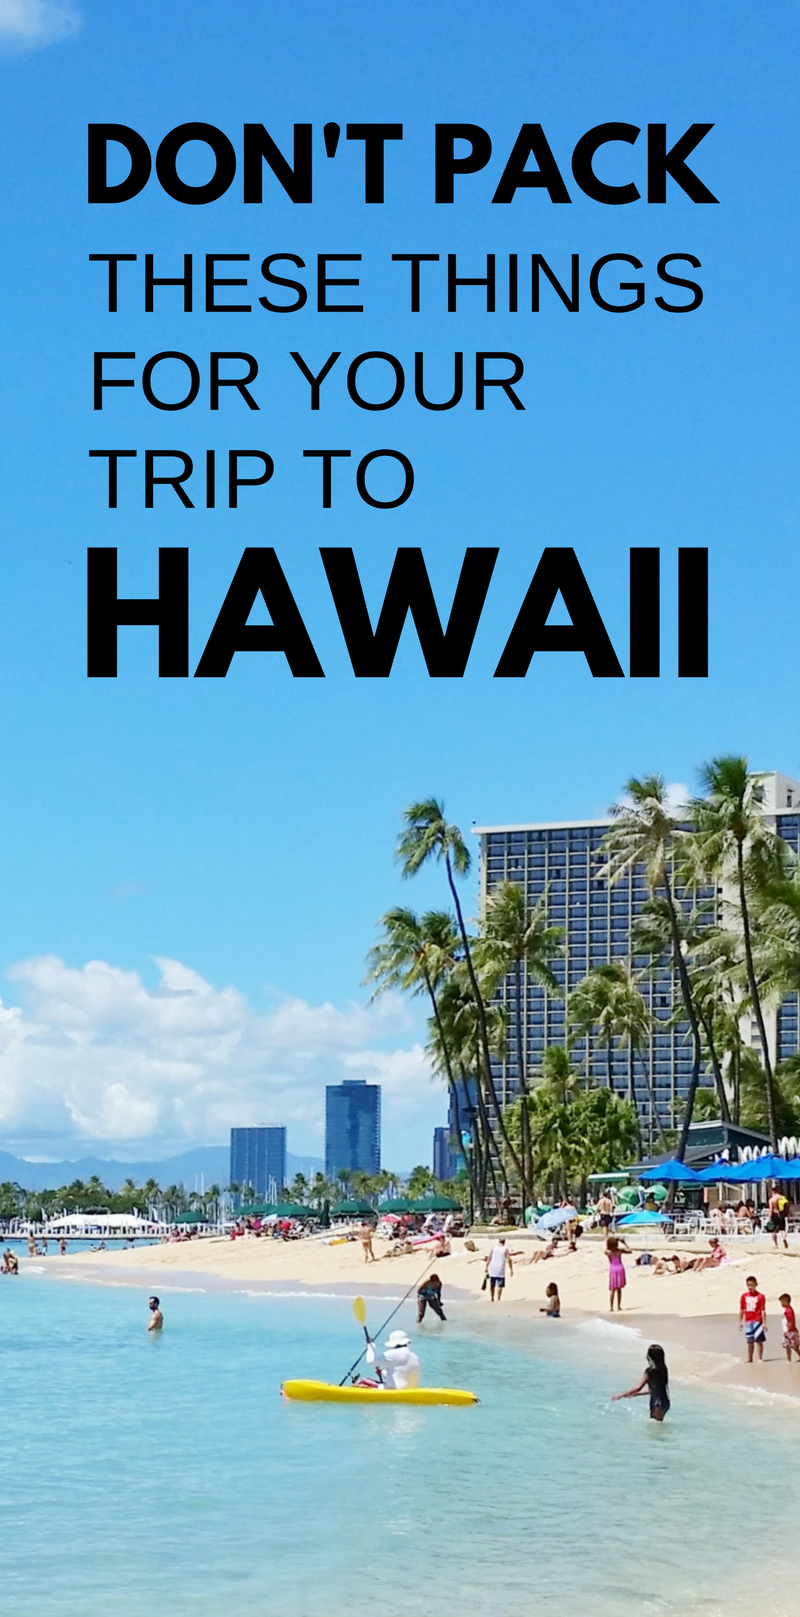 Hawaii vacation is on Oahu, Kauai, Maui, Big Island for a week or month. What not to bring to Hawaii. Things to not add to checklist of vacation packing list. Carry-on luggage only and packing light for Hawaii and Waikiki. With Hawaii packing list of what to pack for Hawaii are travel tips on a budget, for luggage, vacation ideas, things to do in Hawaii, USA travel destinations, bucket list. Don't pack these things for trip, including sunscreen for Hawaii! #oahu #maui #kauai #bigisland #waikiki